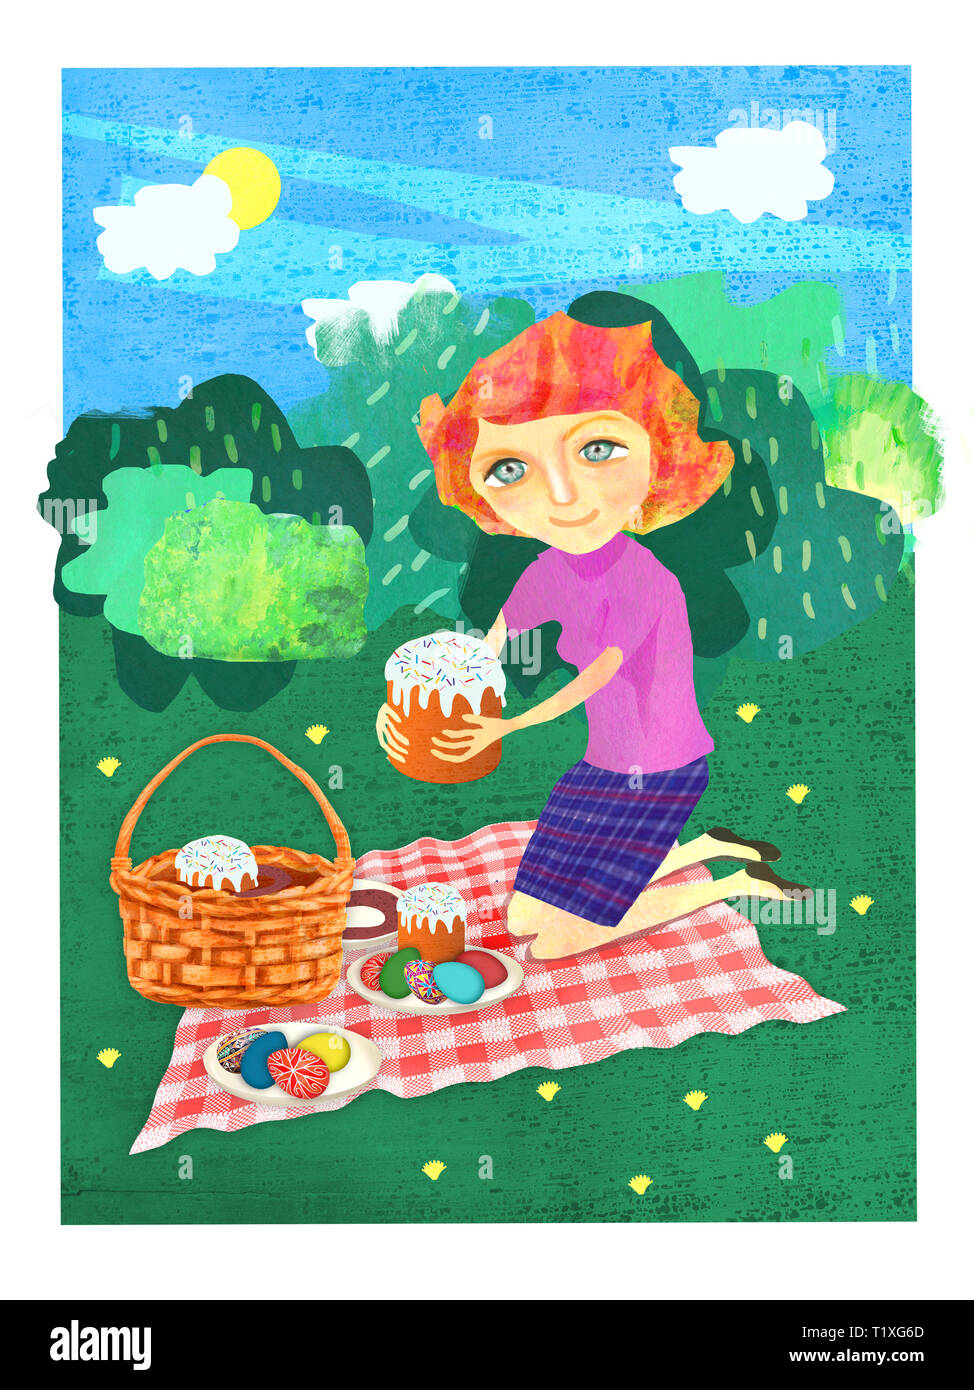 The woman decomposes food for a festive picnic. Easter illustrations in the technique of the author. - Stock Image